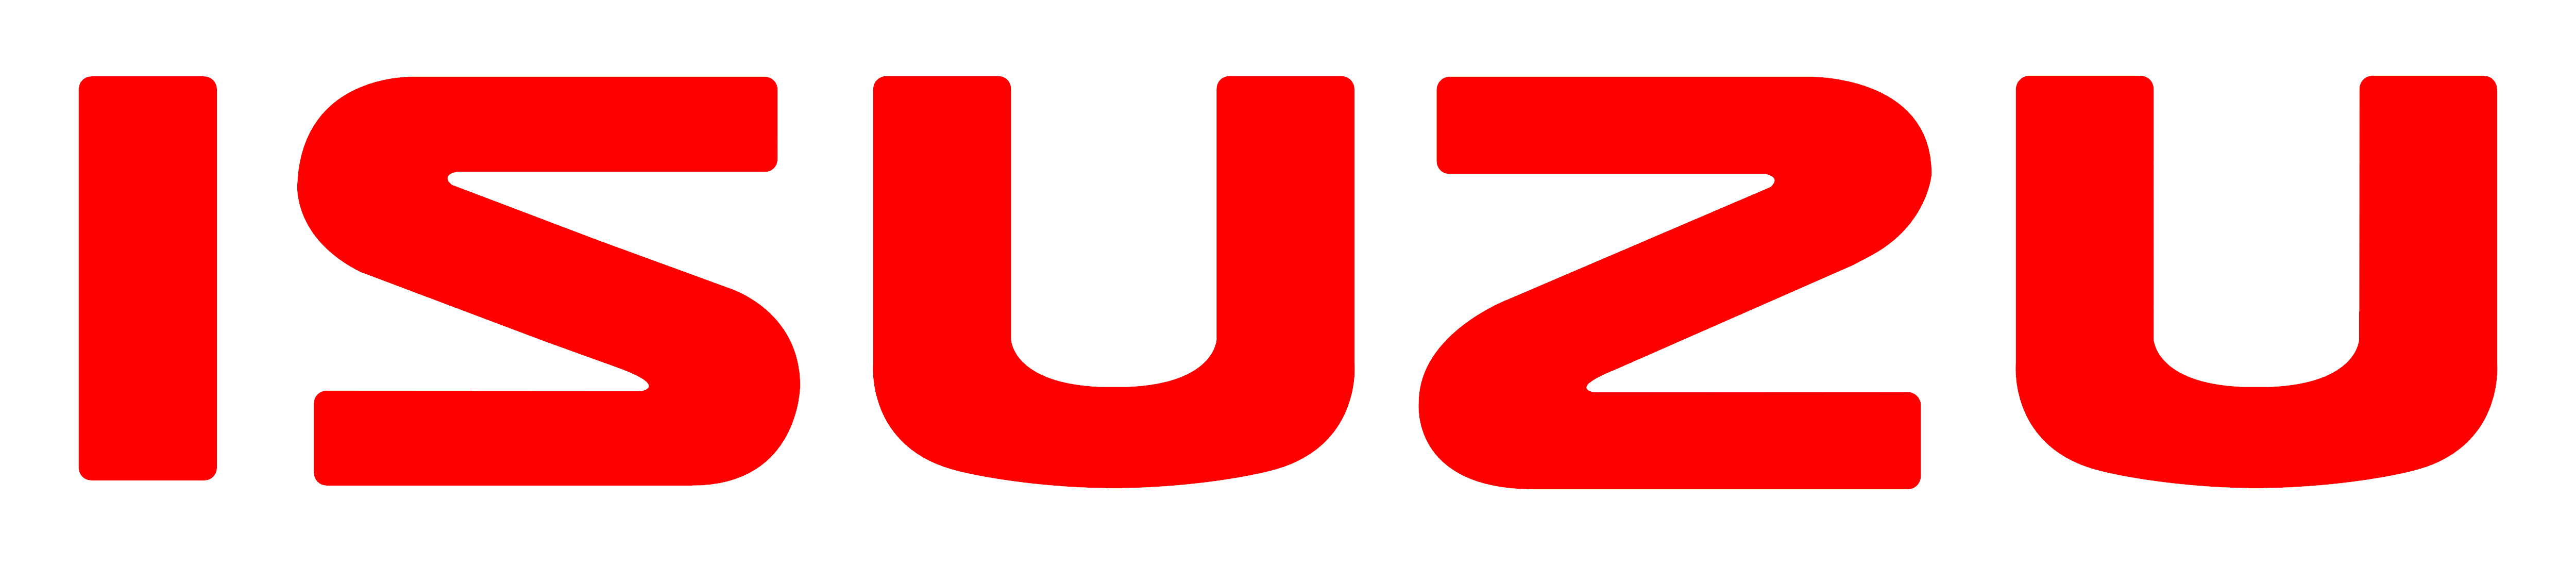 Isuzu Logos Download